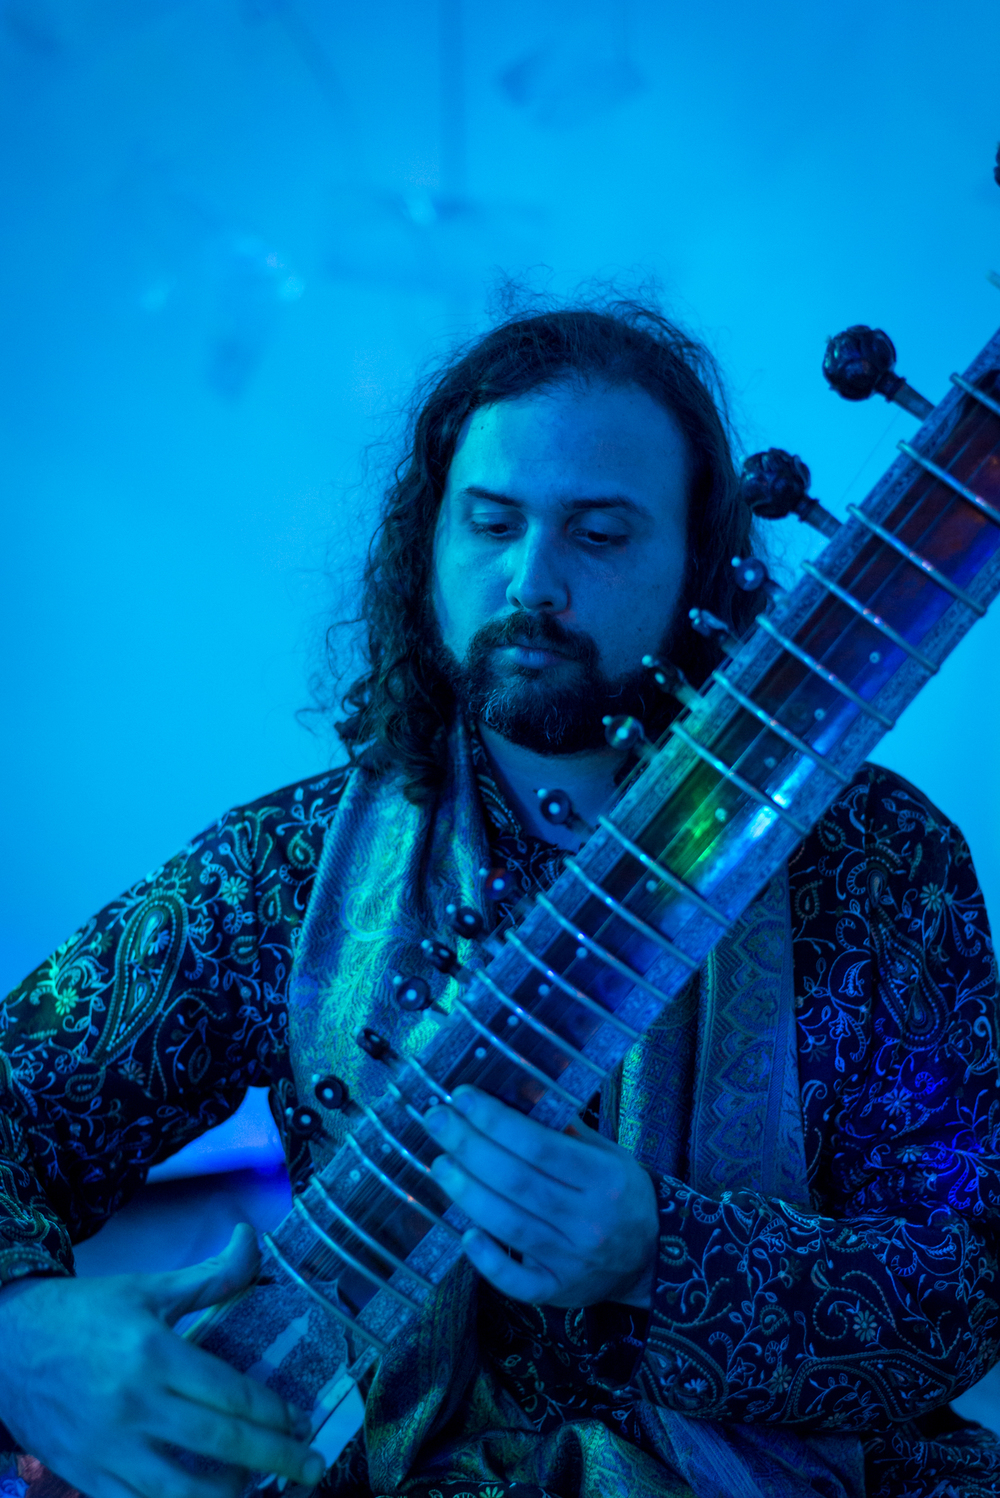 Sitar player at Art Night Austin 2014. Shot for Austin Fusion Magazine.